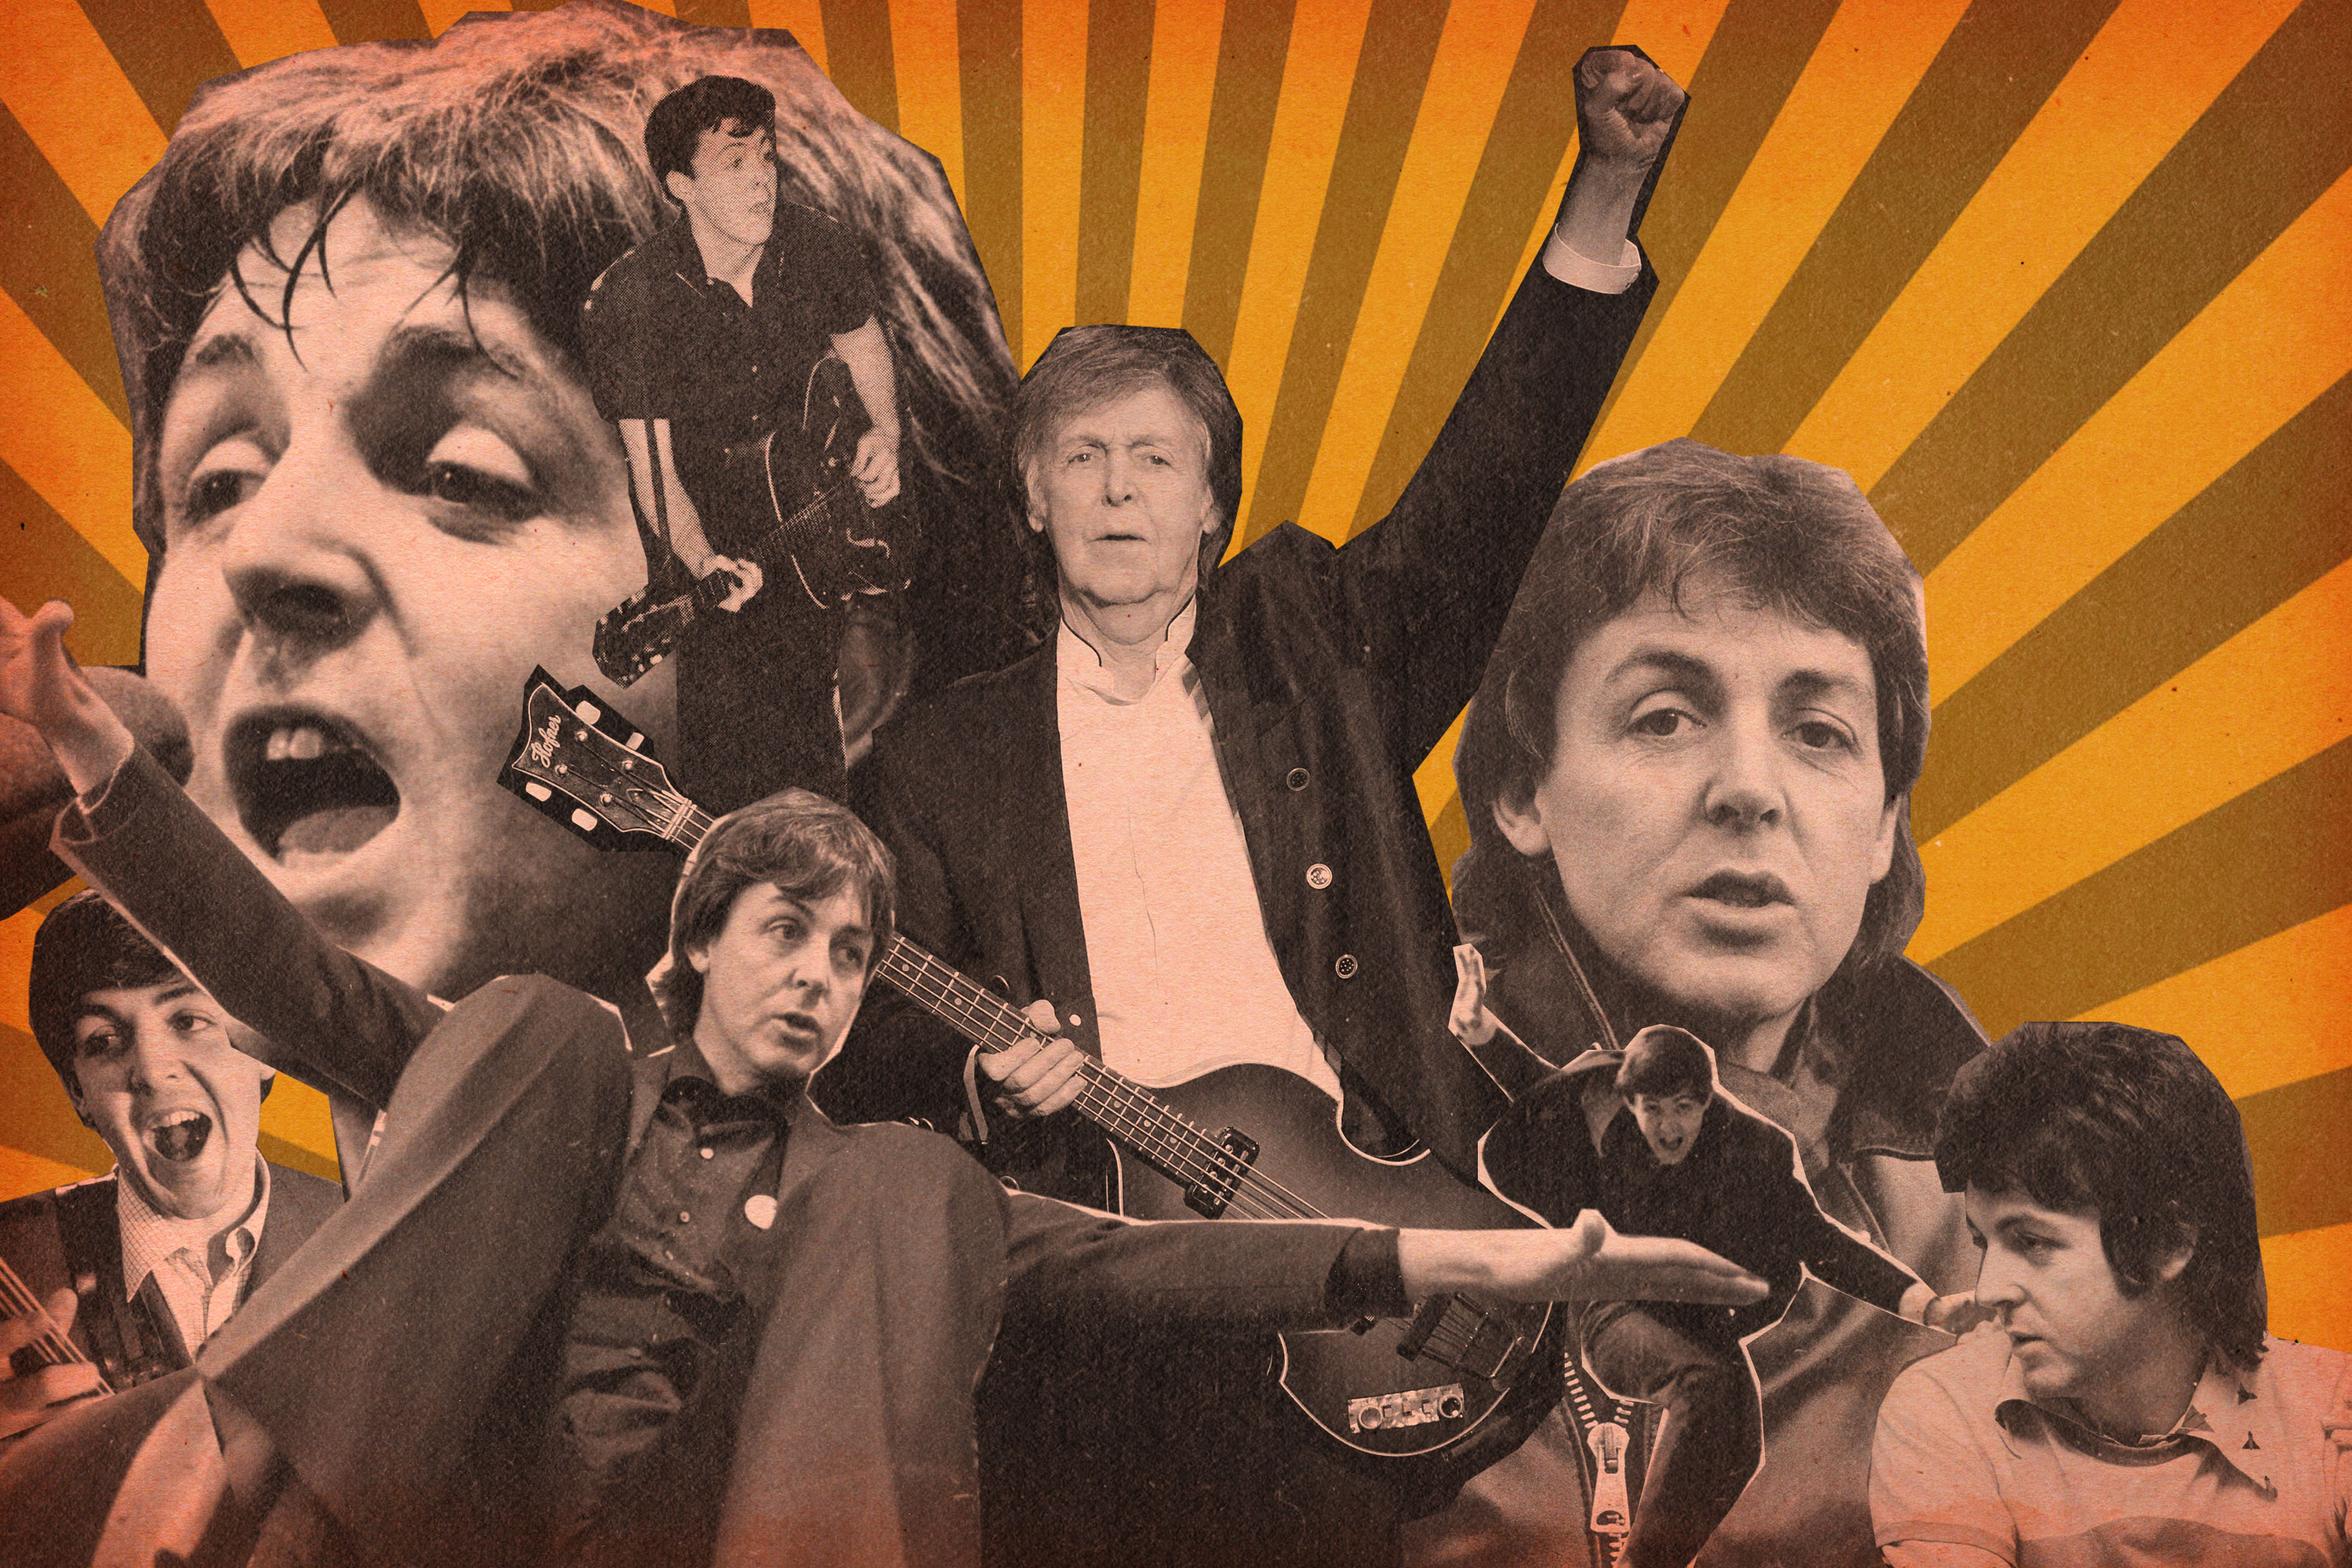 Egypt Station' and the Legacy of Paul McCartney's Message Songs